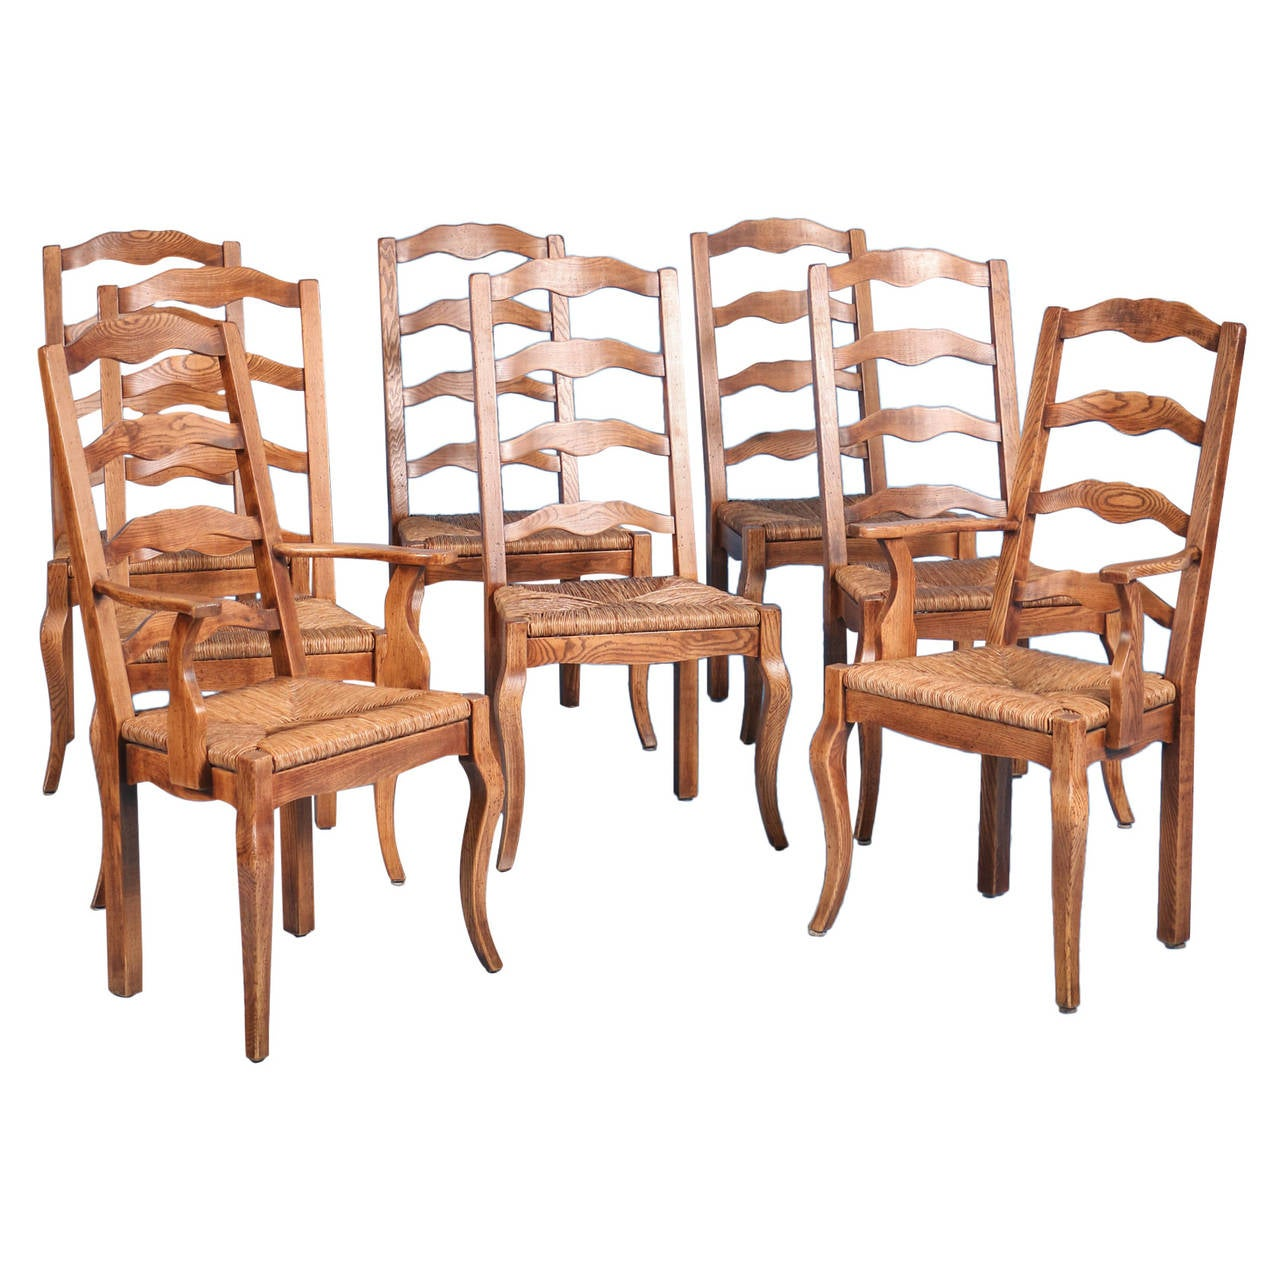 French Dining Chairs French Country Elm Wood And Rush Seat Dining Chairs Set